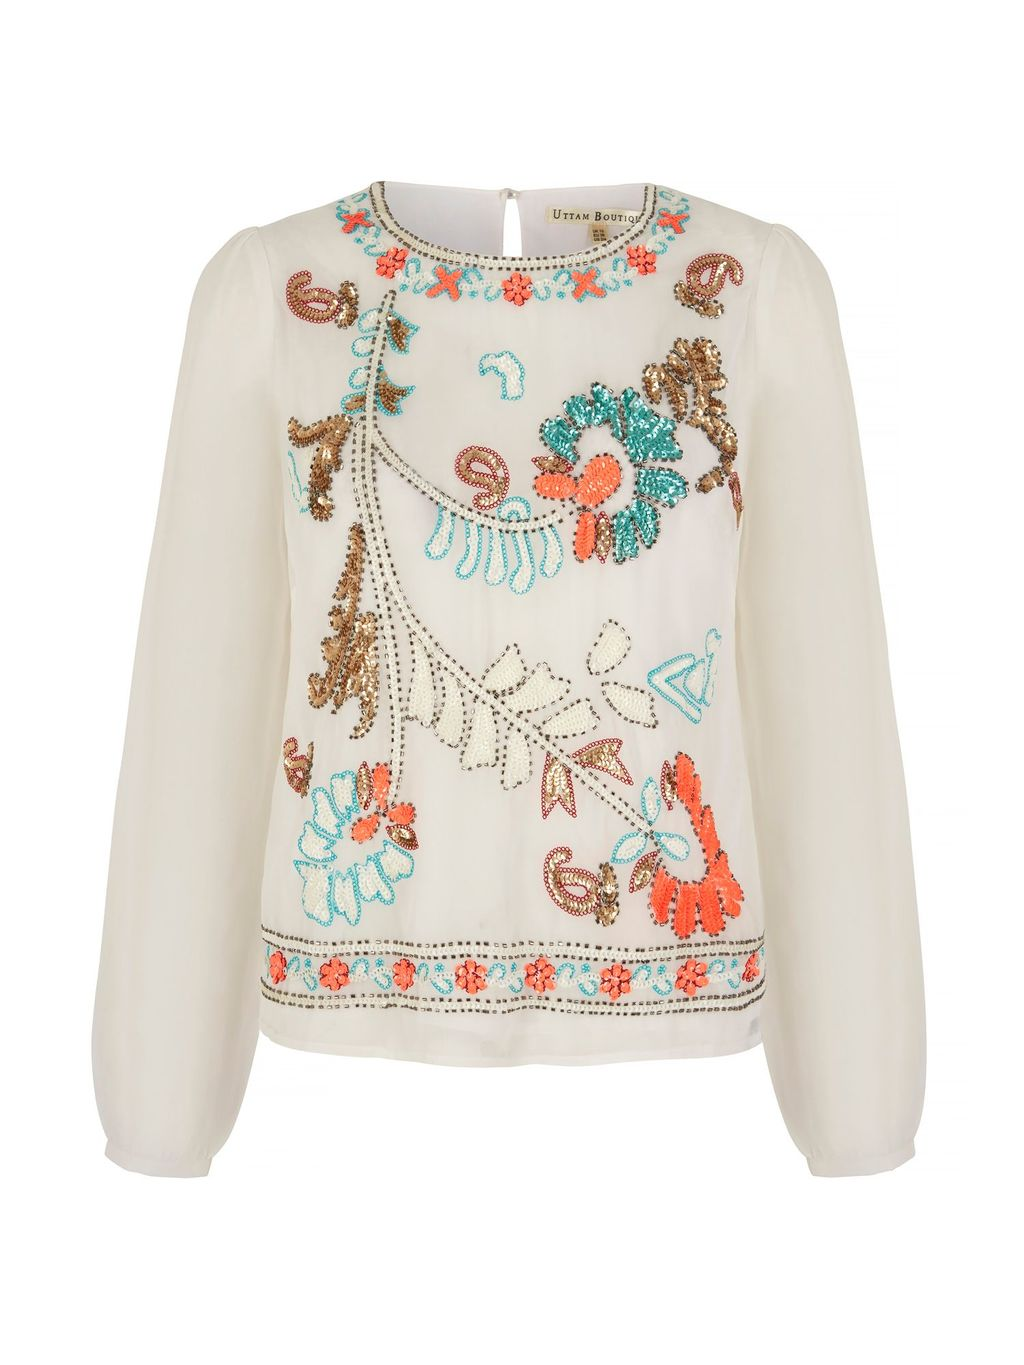 Embellished Long Sleeve Tunic Top, Cream - predominant colour: ivory/cream; secondary colour: bright orange; occasions: evening; length: standard; style: top; fibres: polyester/polyamide - 100%; fit: body skimming; neckline: crew; sleeve length: long sleeve; sleeve style: standard; pattern type: fabric; pattern: patterned/print; texture group: other - light to midweight; embellishment: embroidered; multicoloured: multicoloured; season: s/s 2016